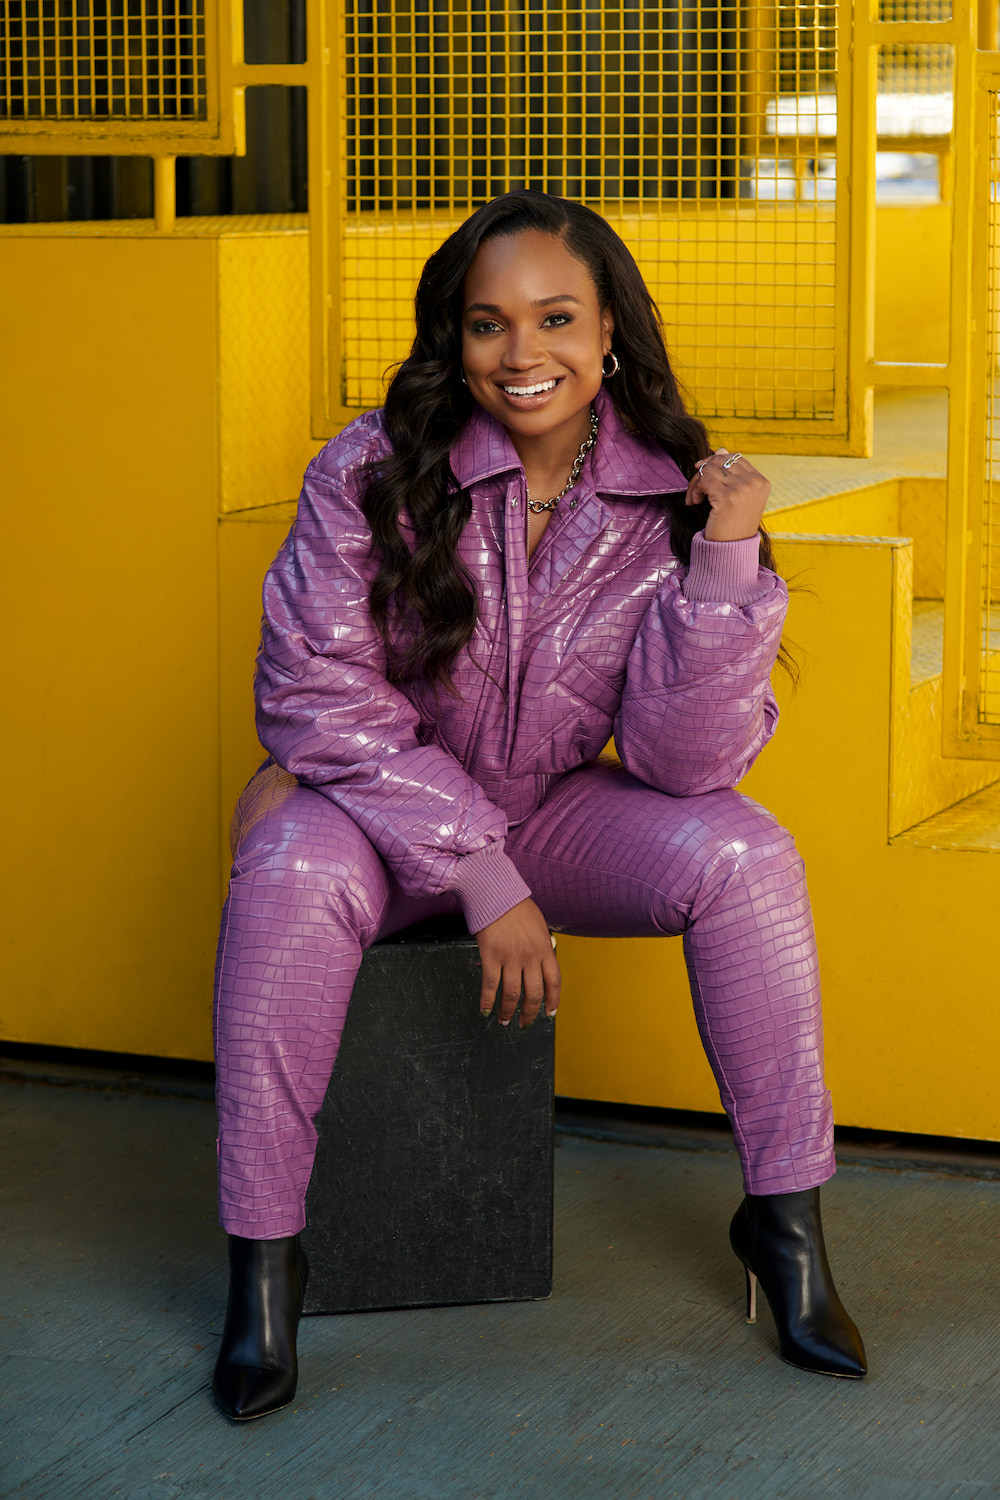 Kayla Grey in a purple outfit sitting in front of a yellow staircase